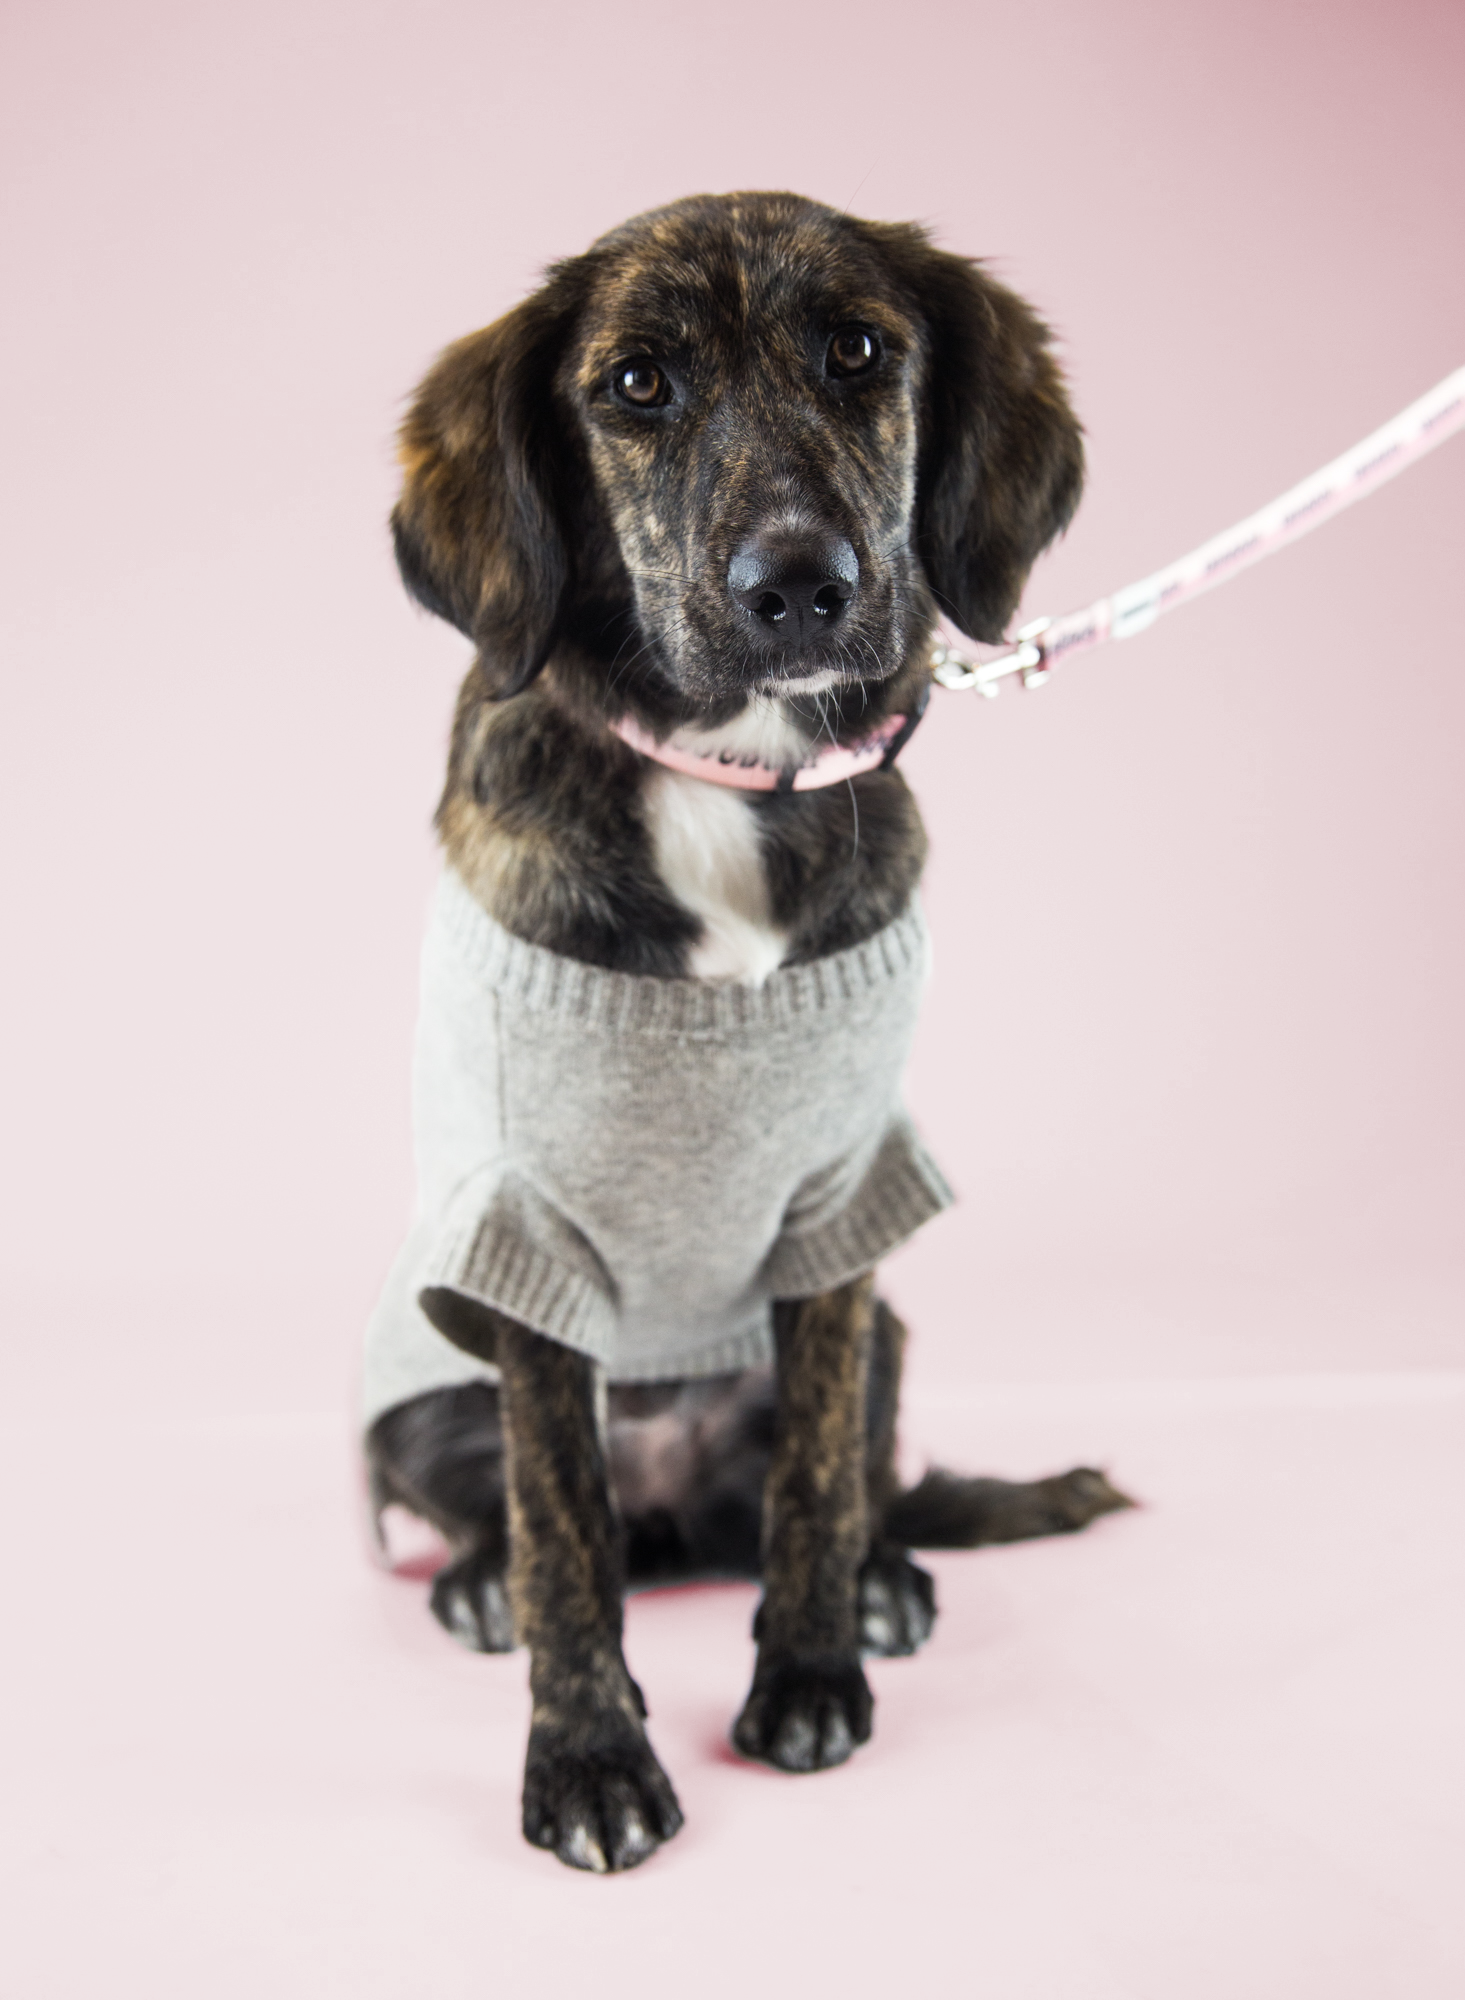 Favourite Goodboy Swag - Murphy's unique colouring makes it easy to look good in just about anything. She loves the Pethaus Raw Denim Vest, of course. She also picked up the Goodgirl Collar, because well, she's a very good girl. Oh, and she happens to look great in pink.